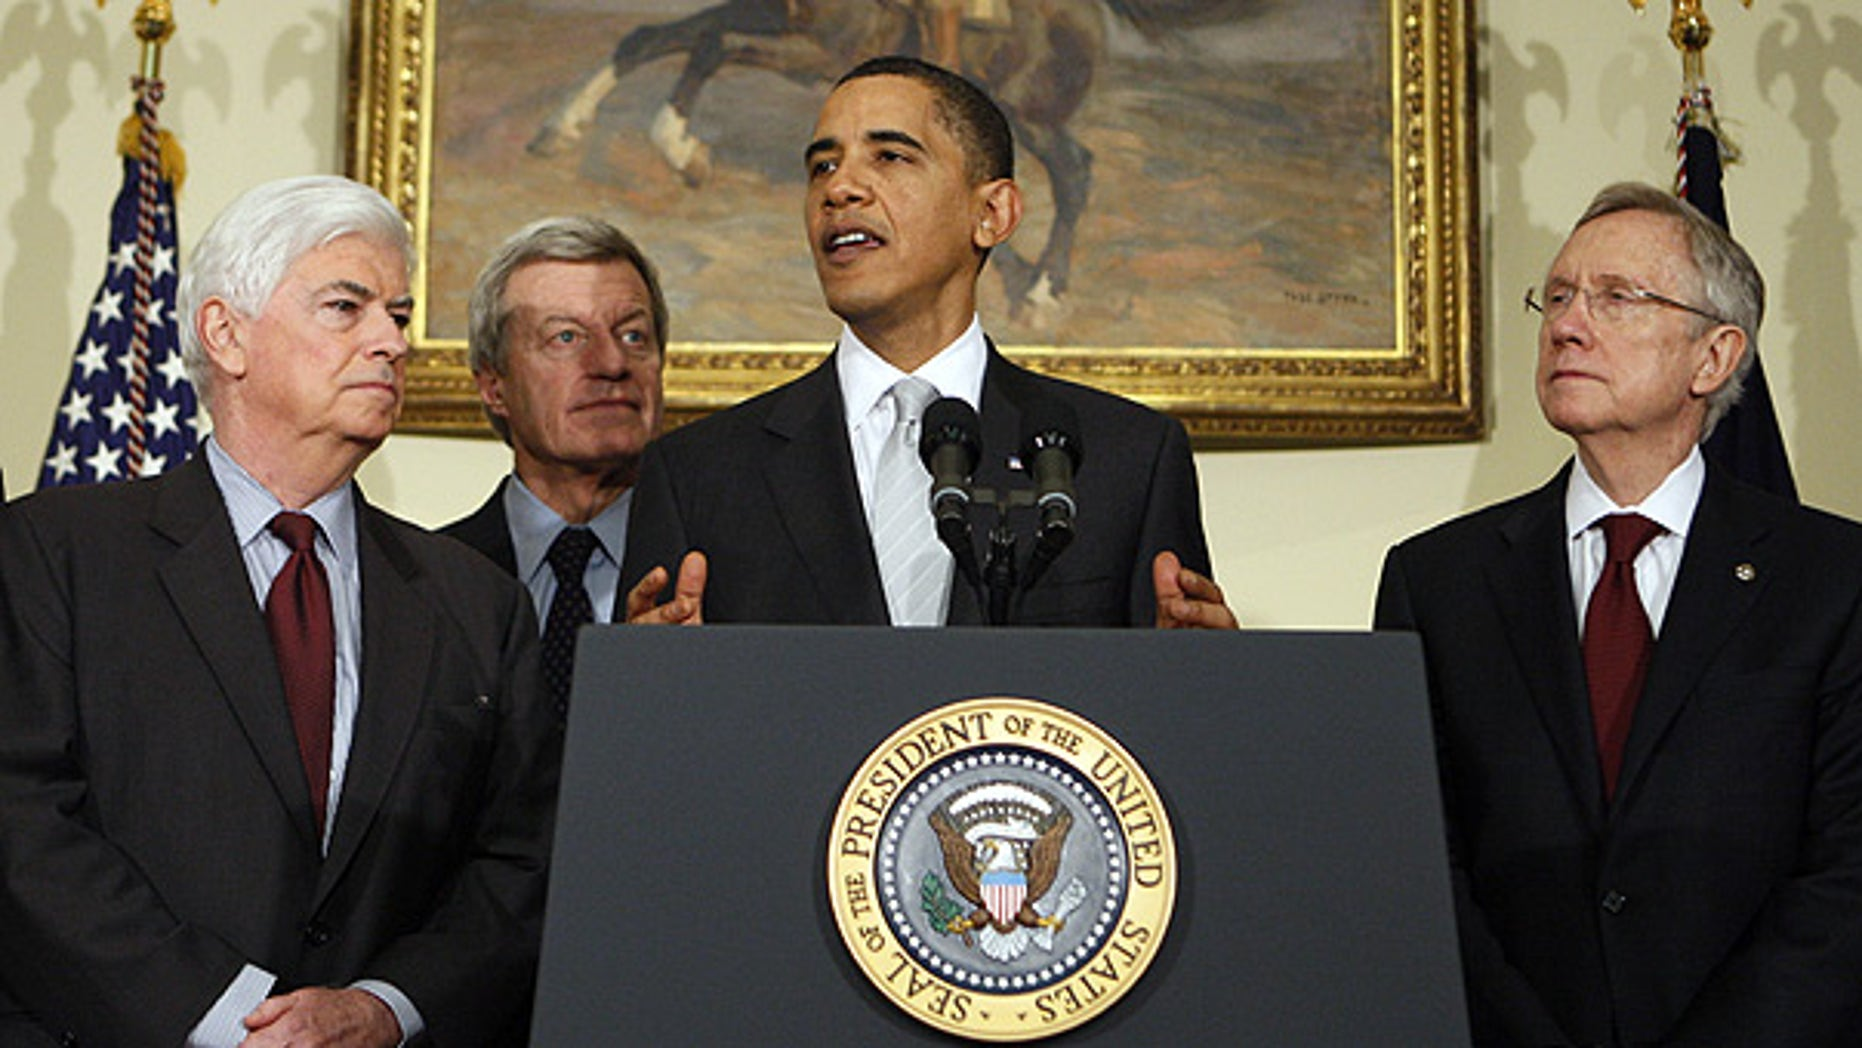 Dec. 15: President Obama, flanked by Senate Democrats, makes a statement on health care reform. (AP)